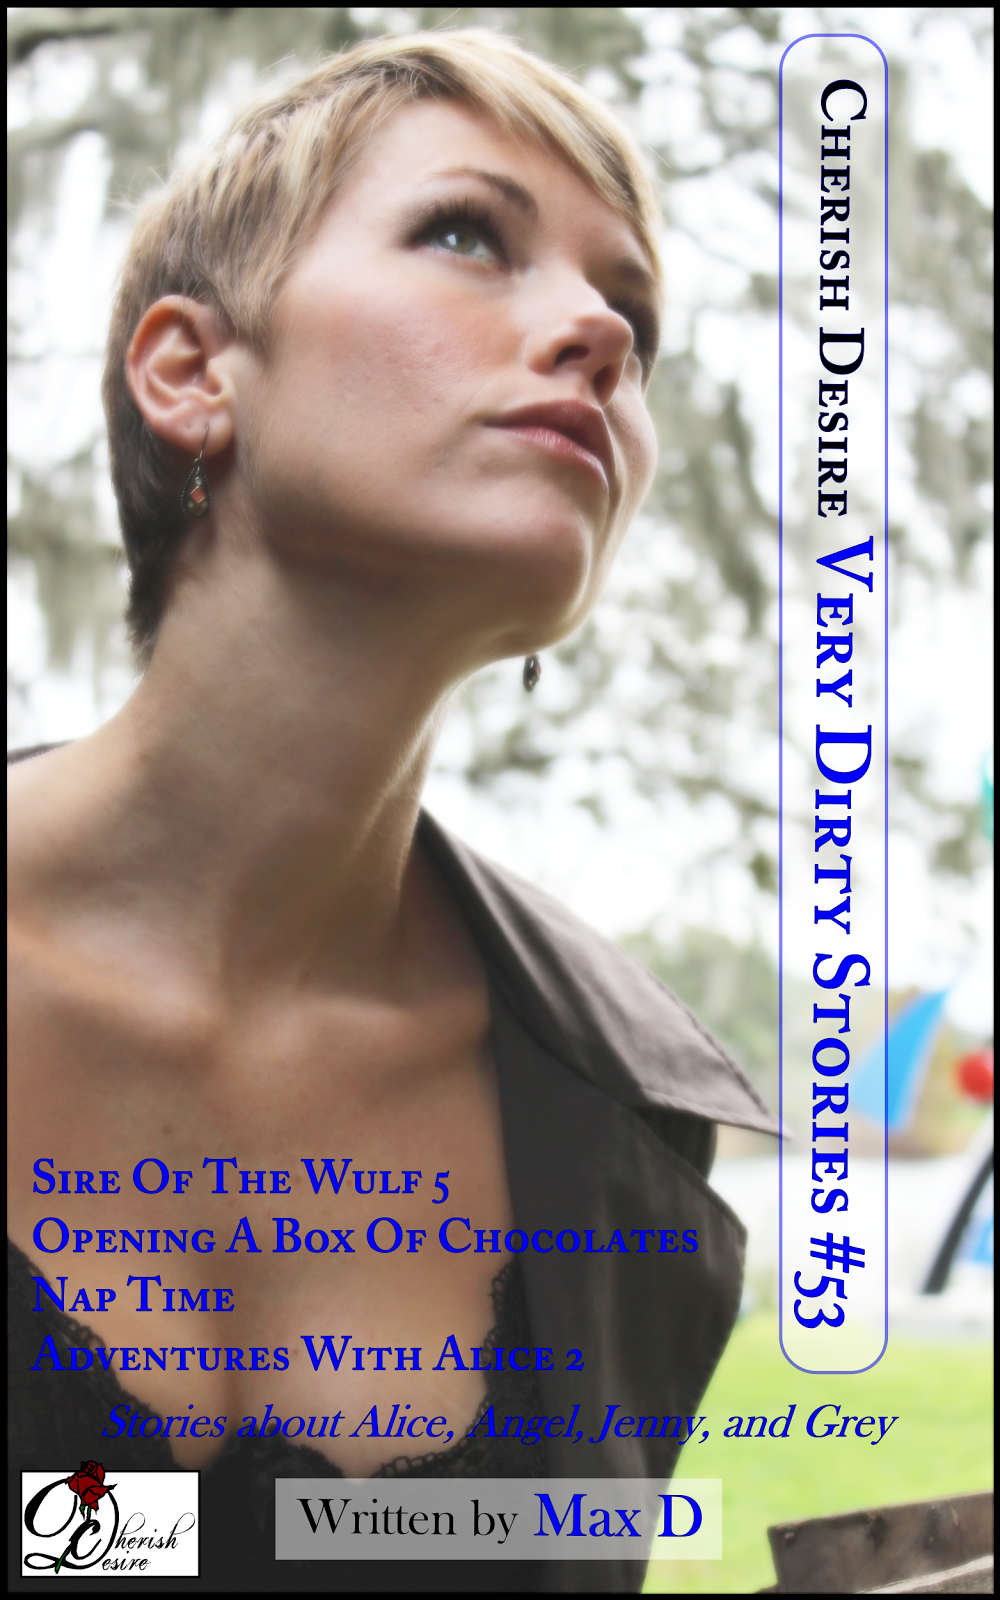 Cherish Desire: Very Dirty Stories #53, Max D, erotica